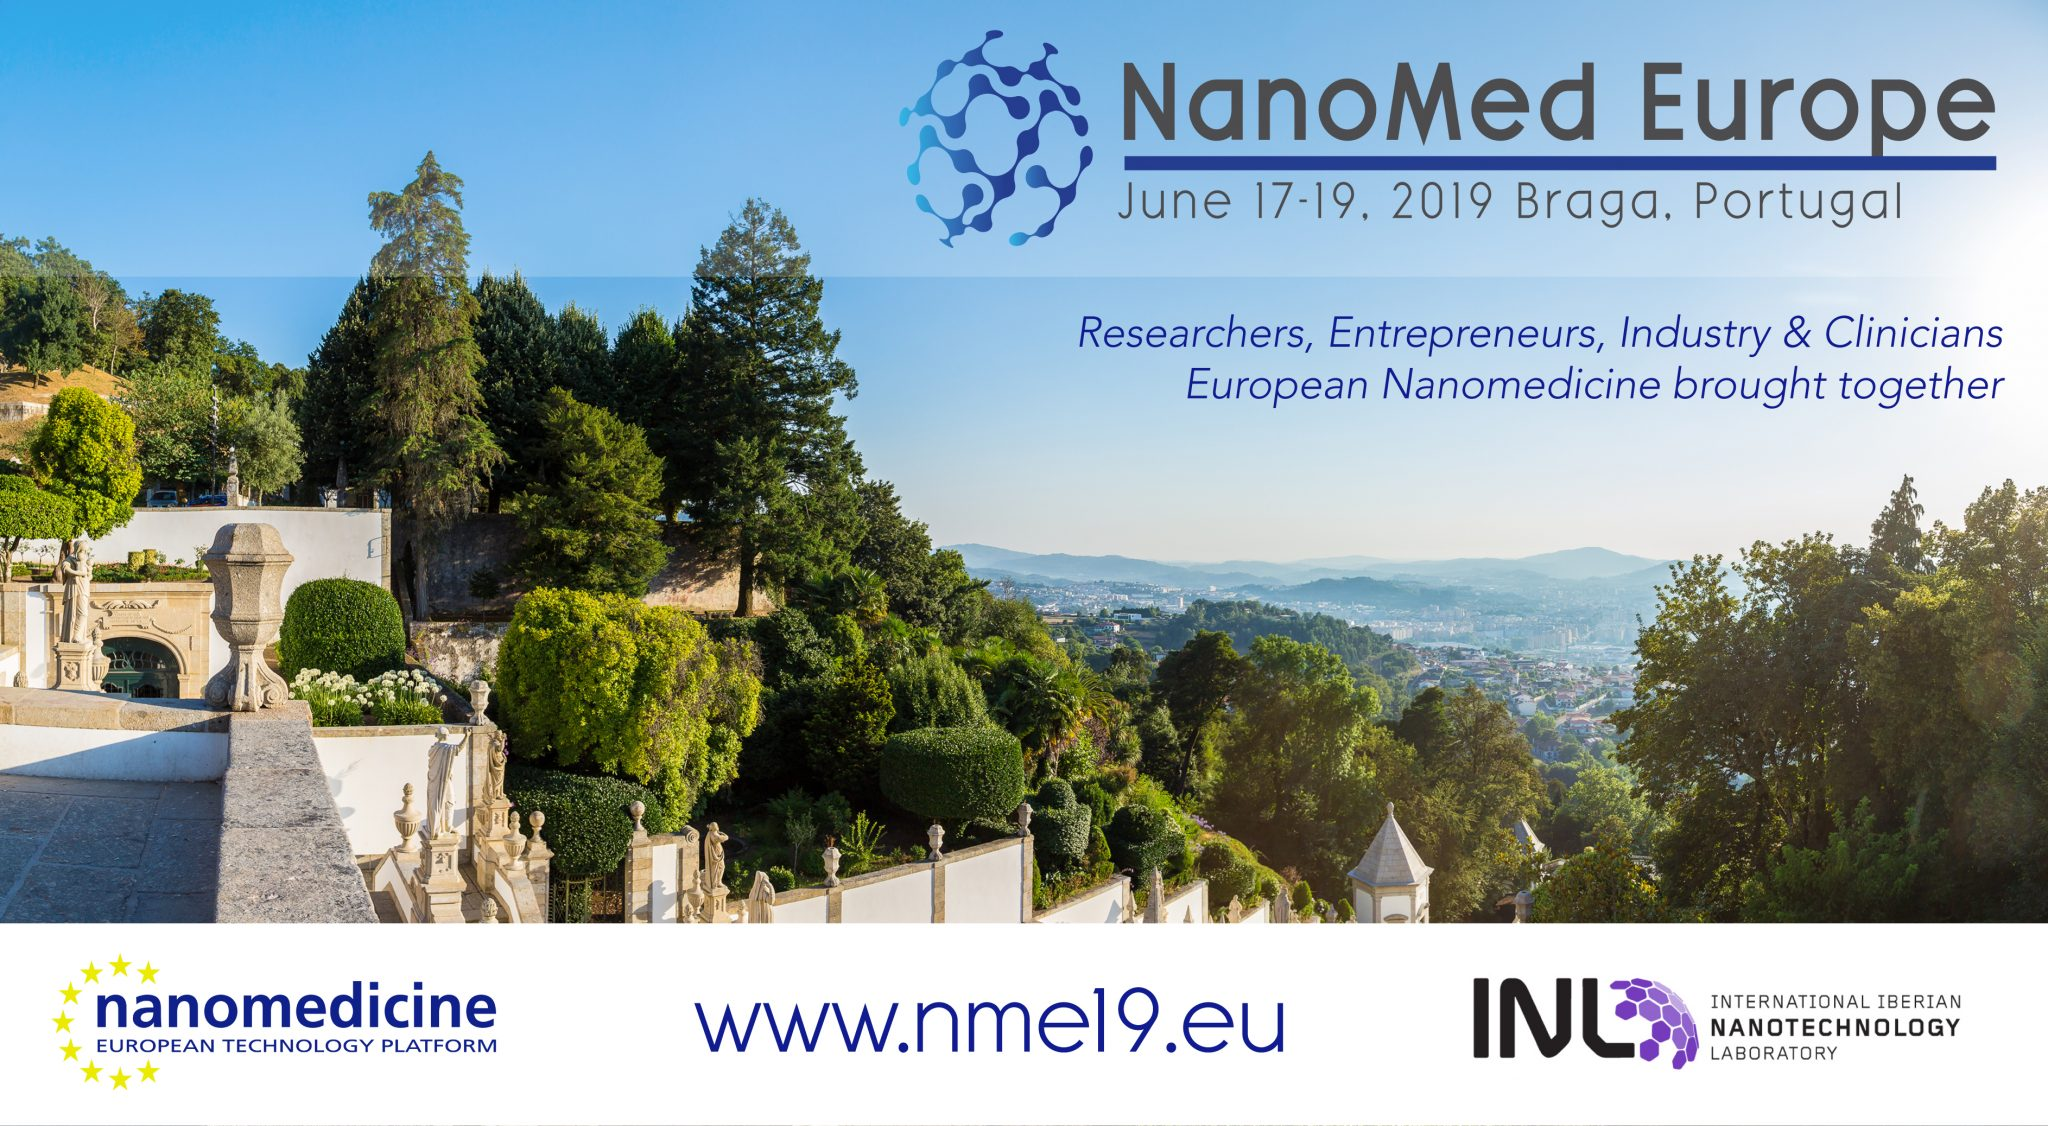 NanoMed Europe 2019 in Braga, largest Nanomedicine event in Europe.